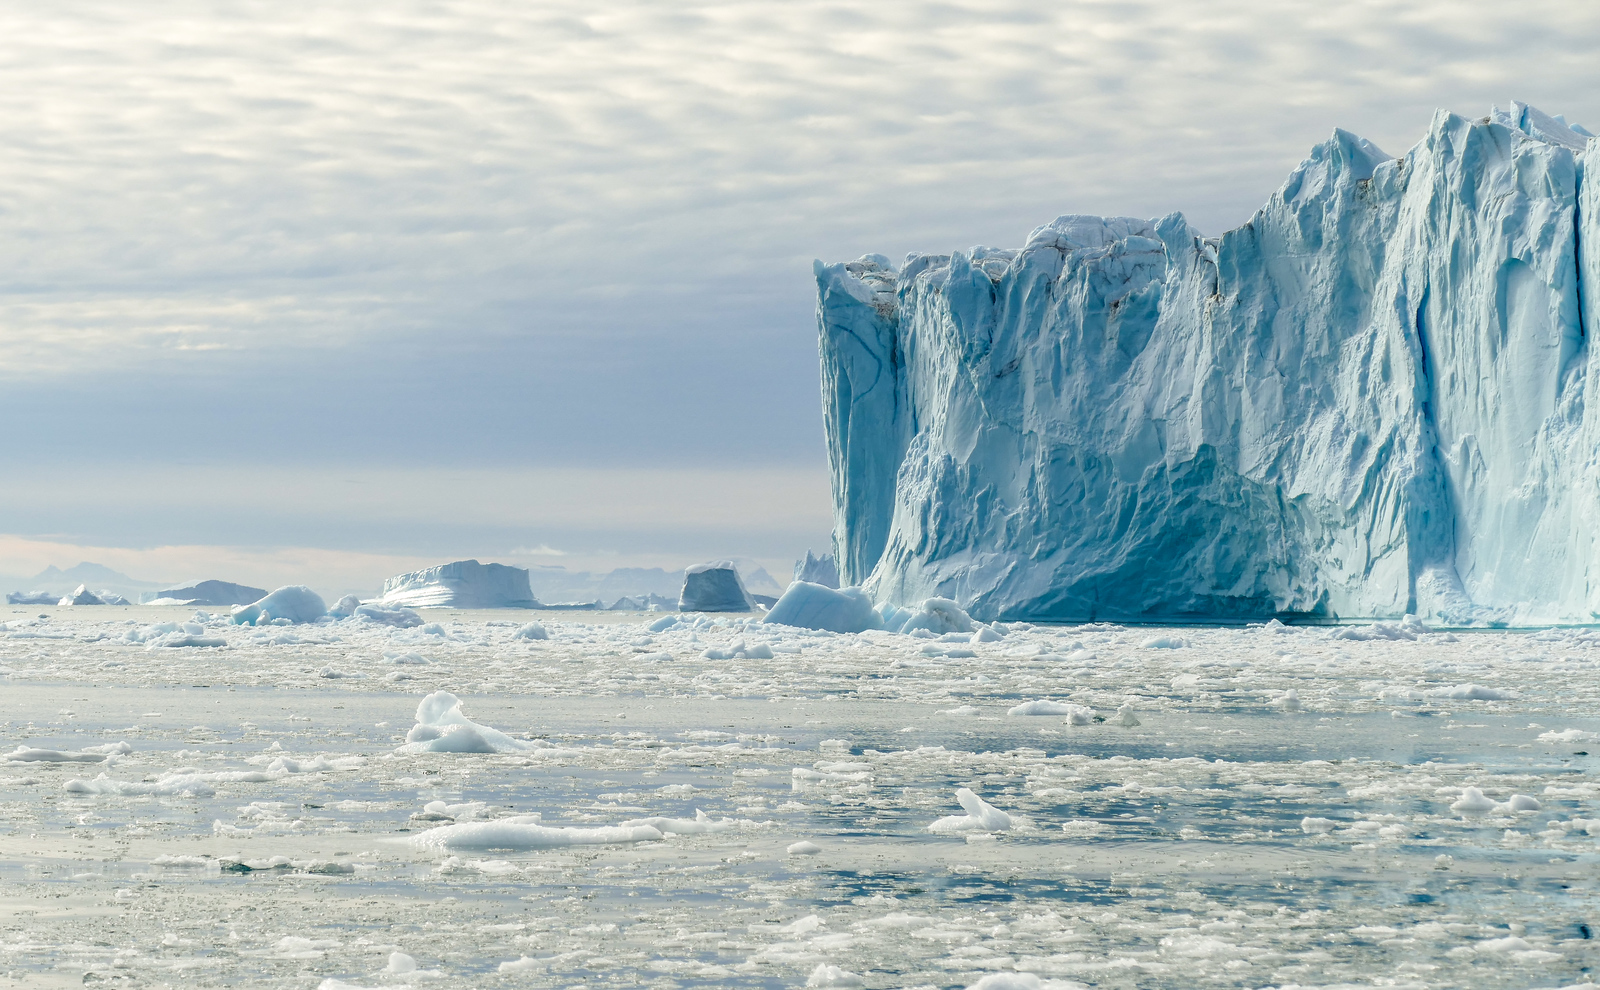 On a luxury cruise expedition, explore the icebergs of Greenland. Click through to read about this fun, boomer travel adventure with Silversea Cruises. #adventure #Greenland #bucketlist